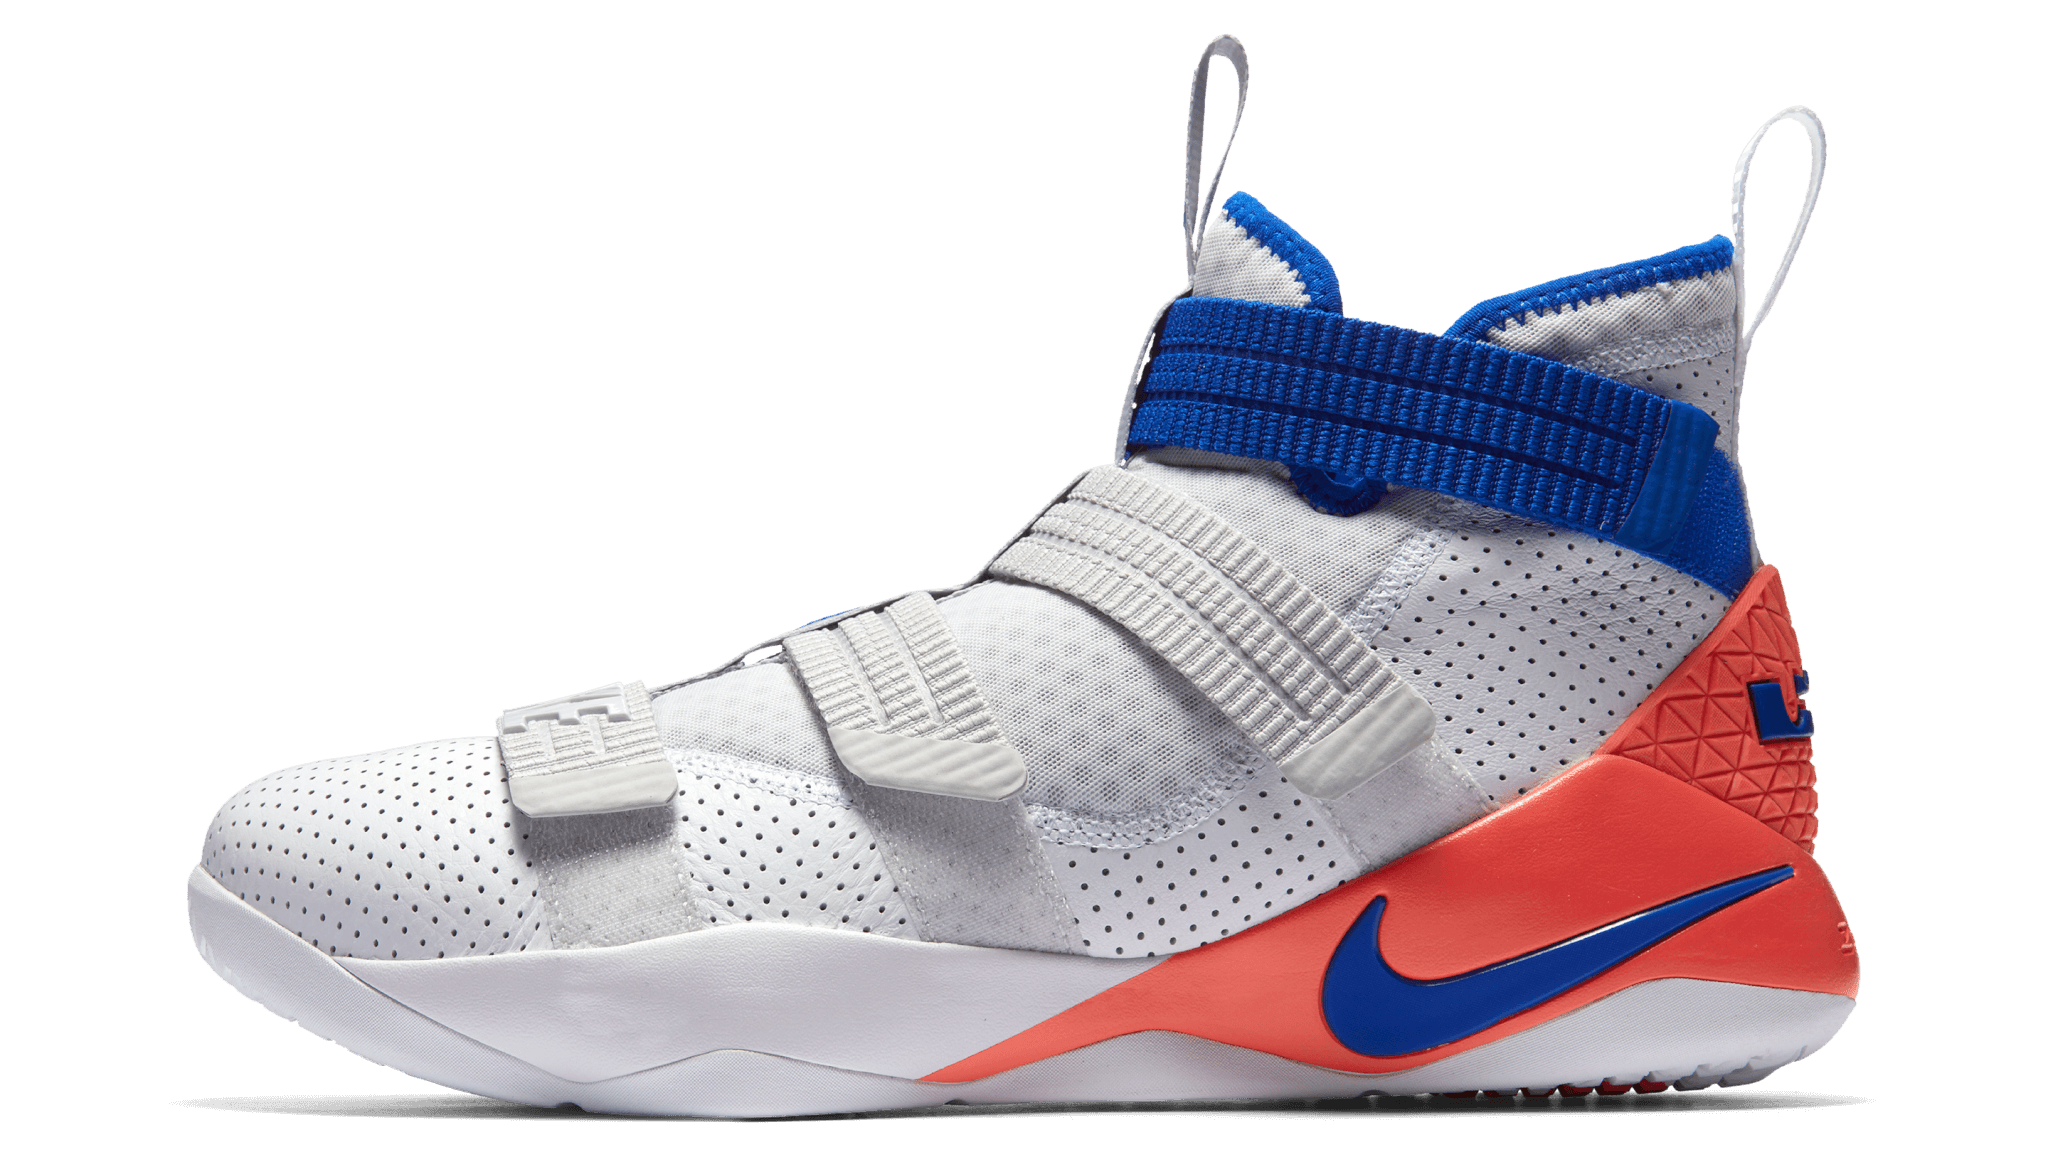 timeless design 15860 d0ec5 Nike Lebron Soldier 11 Review